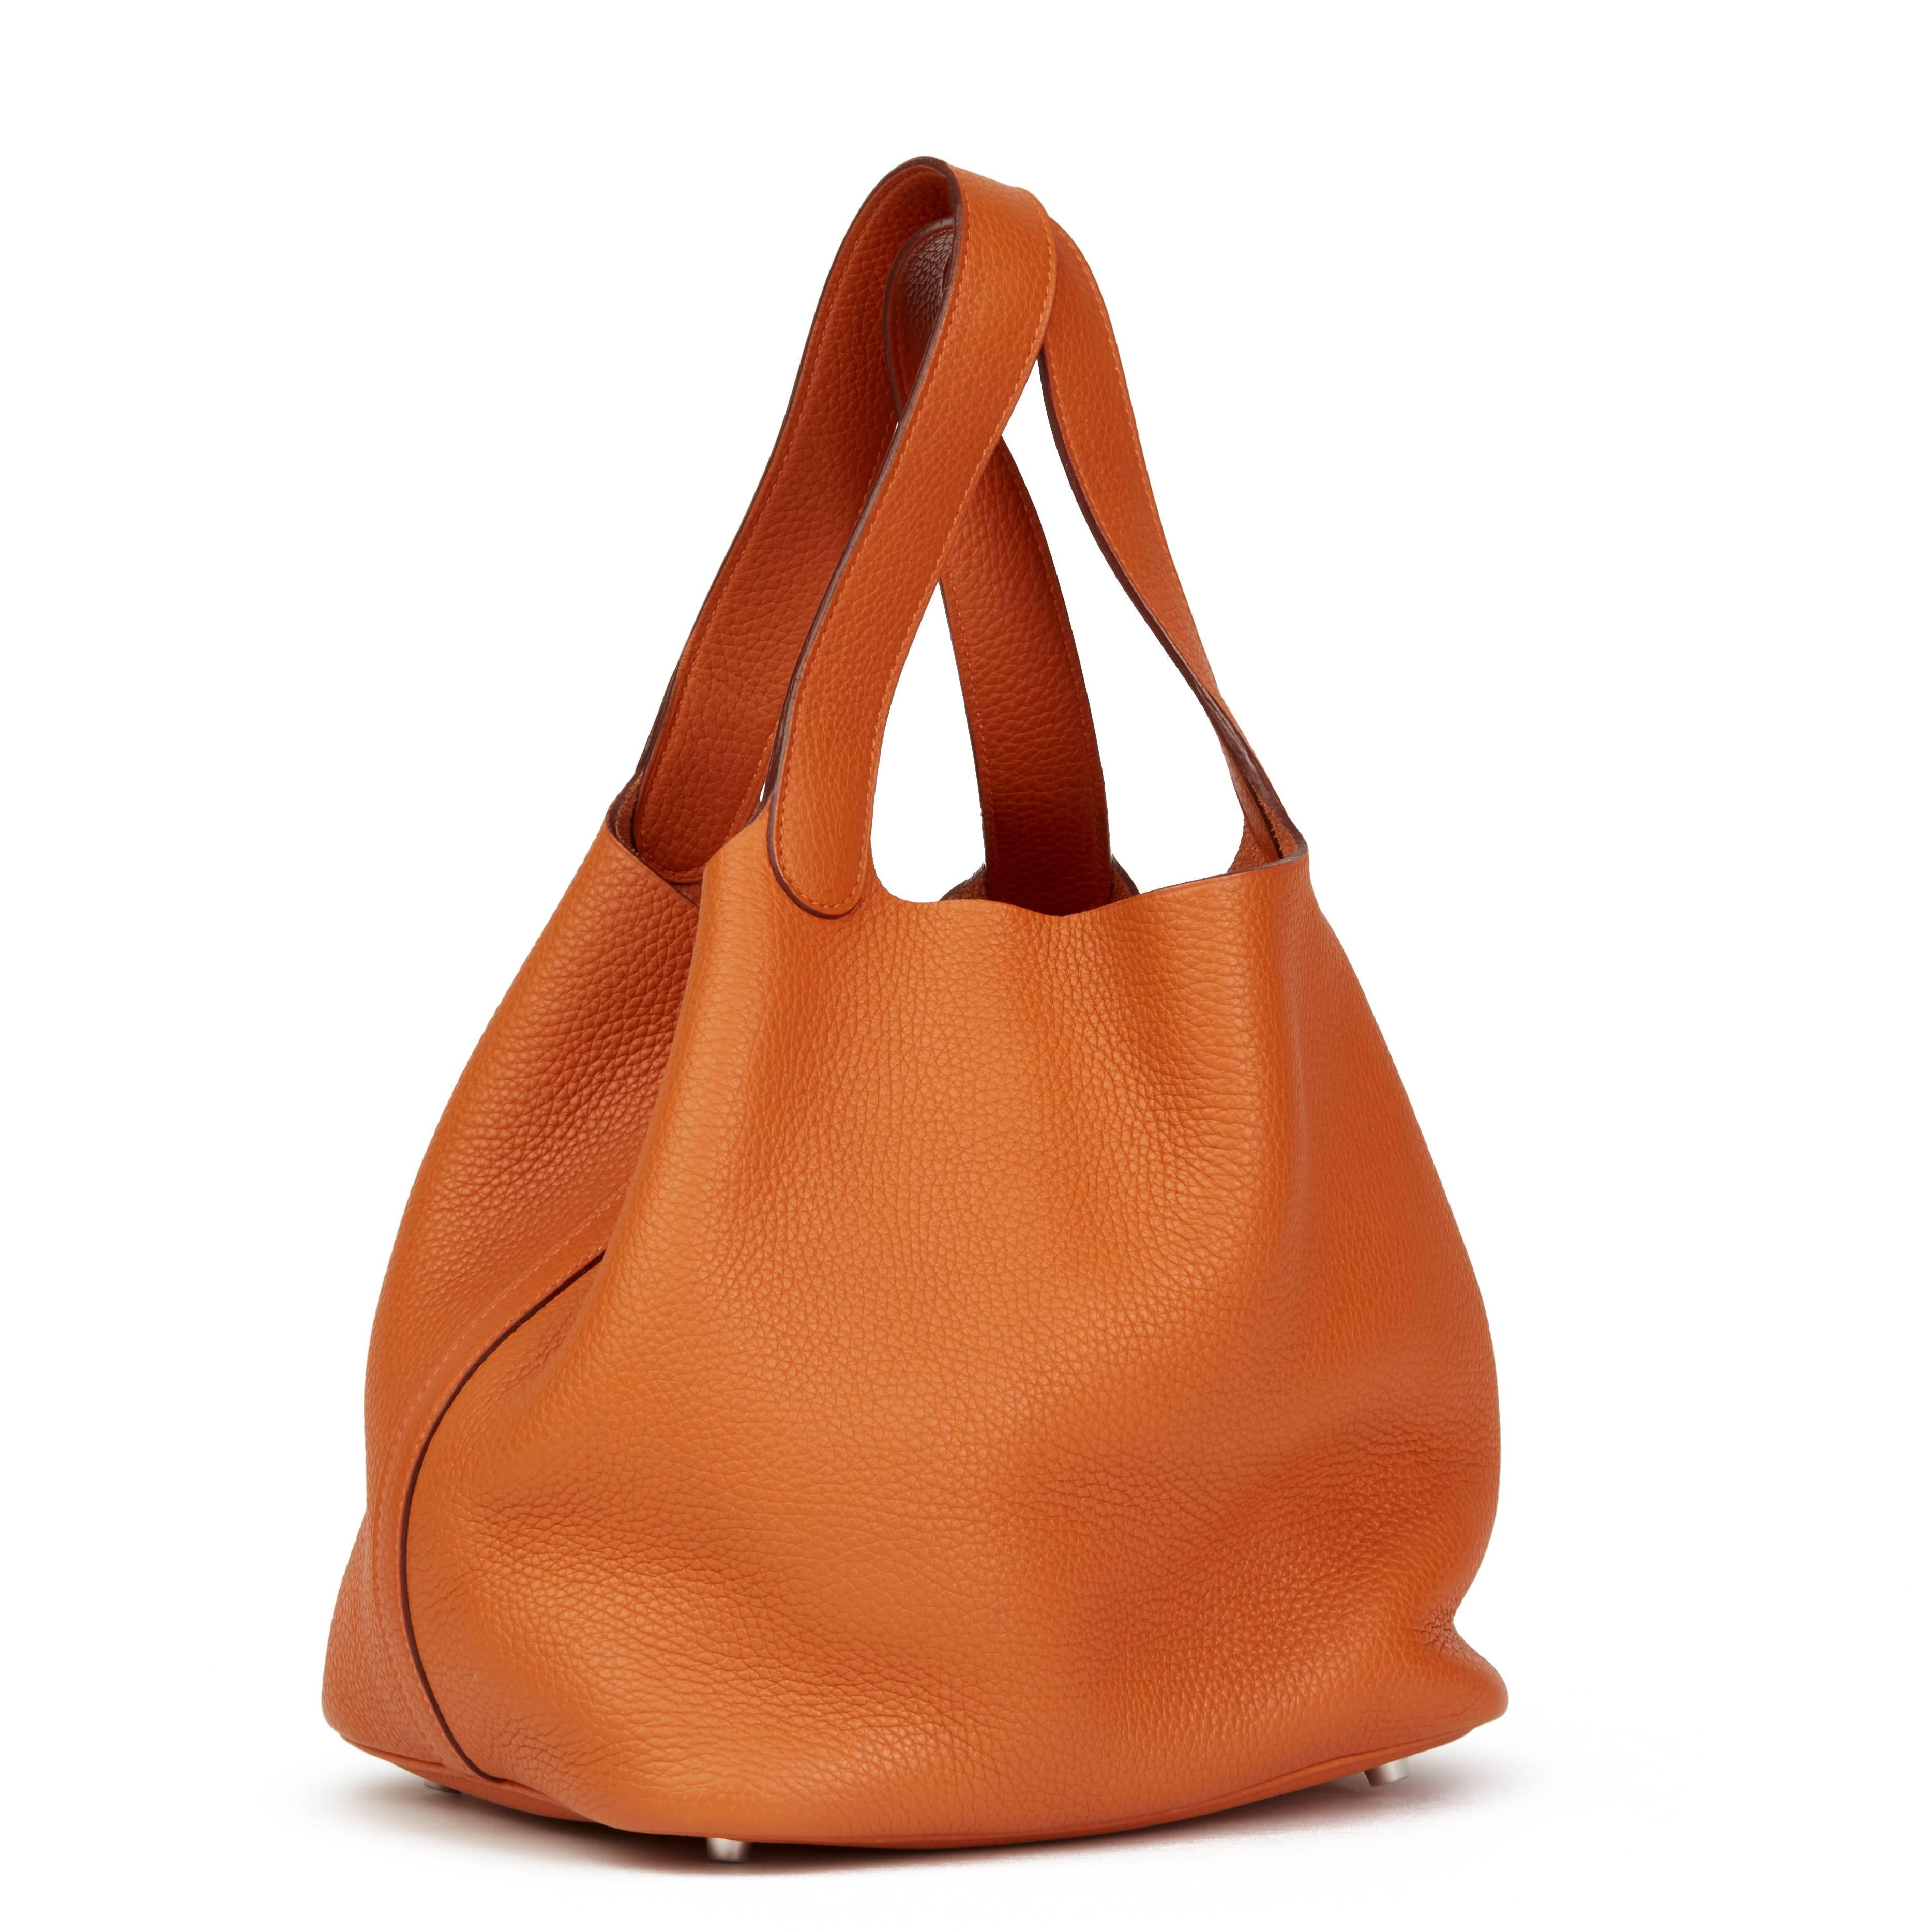 596a0 3ca67  where to buy 2007 hermes orange h clemence leather picotin 22  in excellent condition for sale fb1e97c9227cc